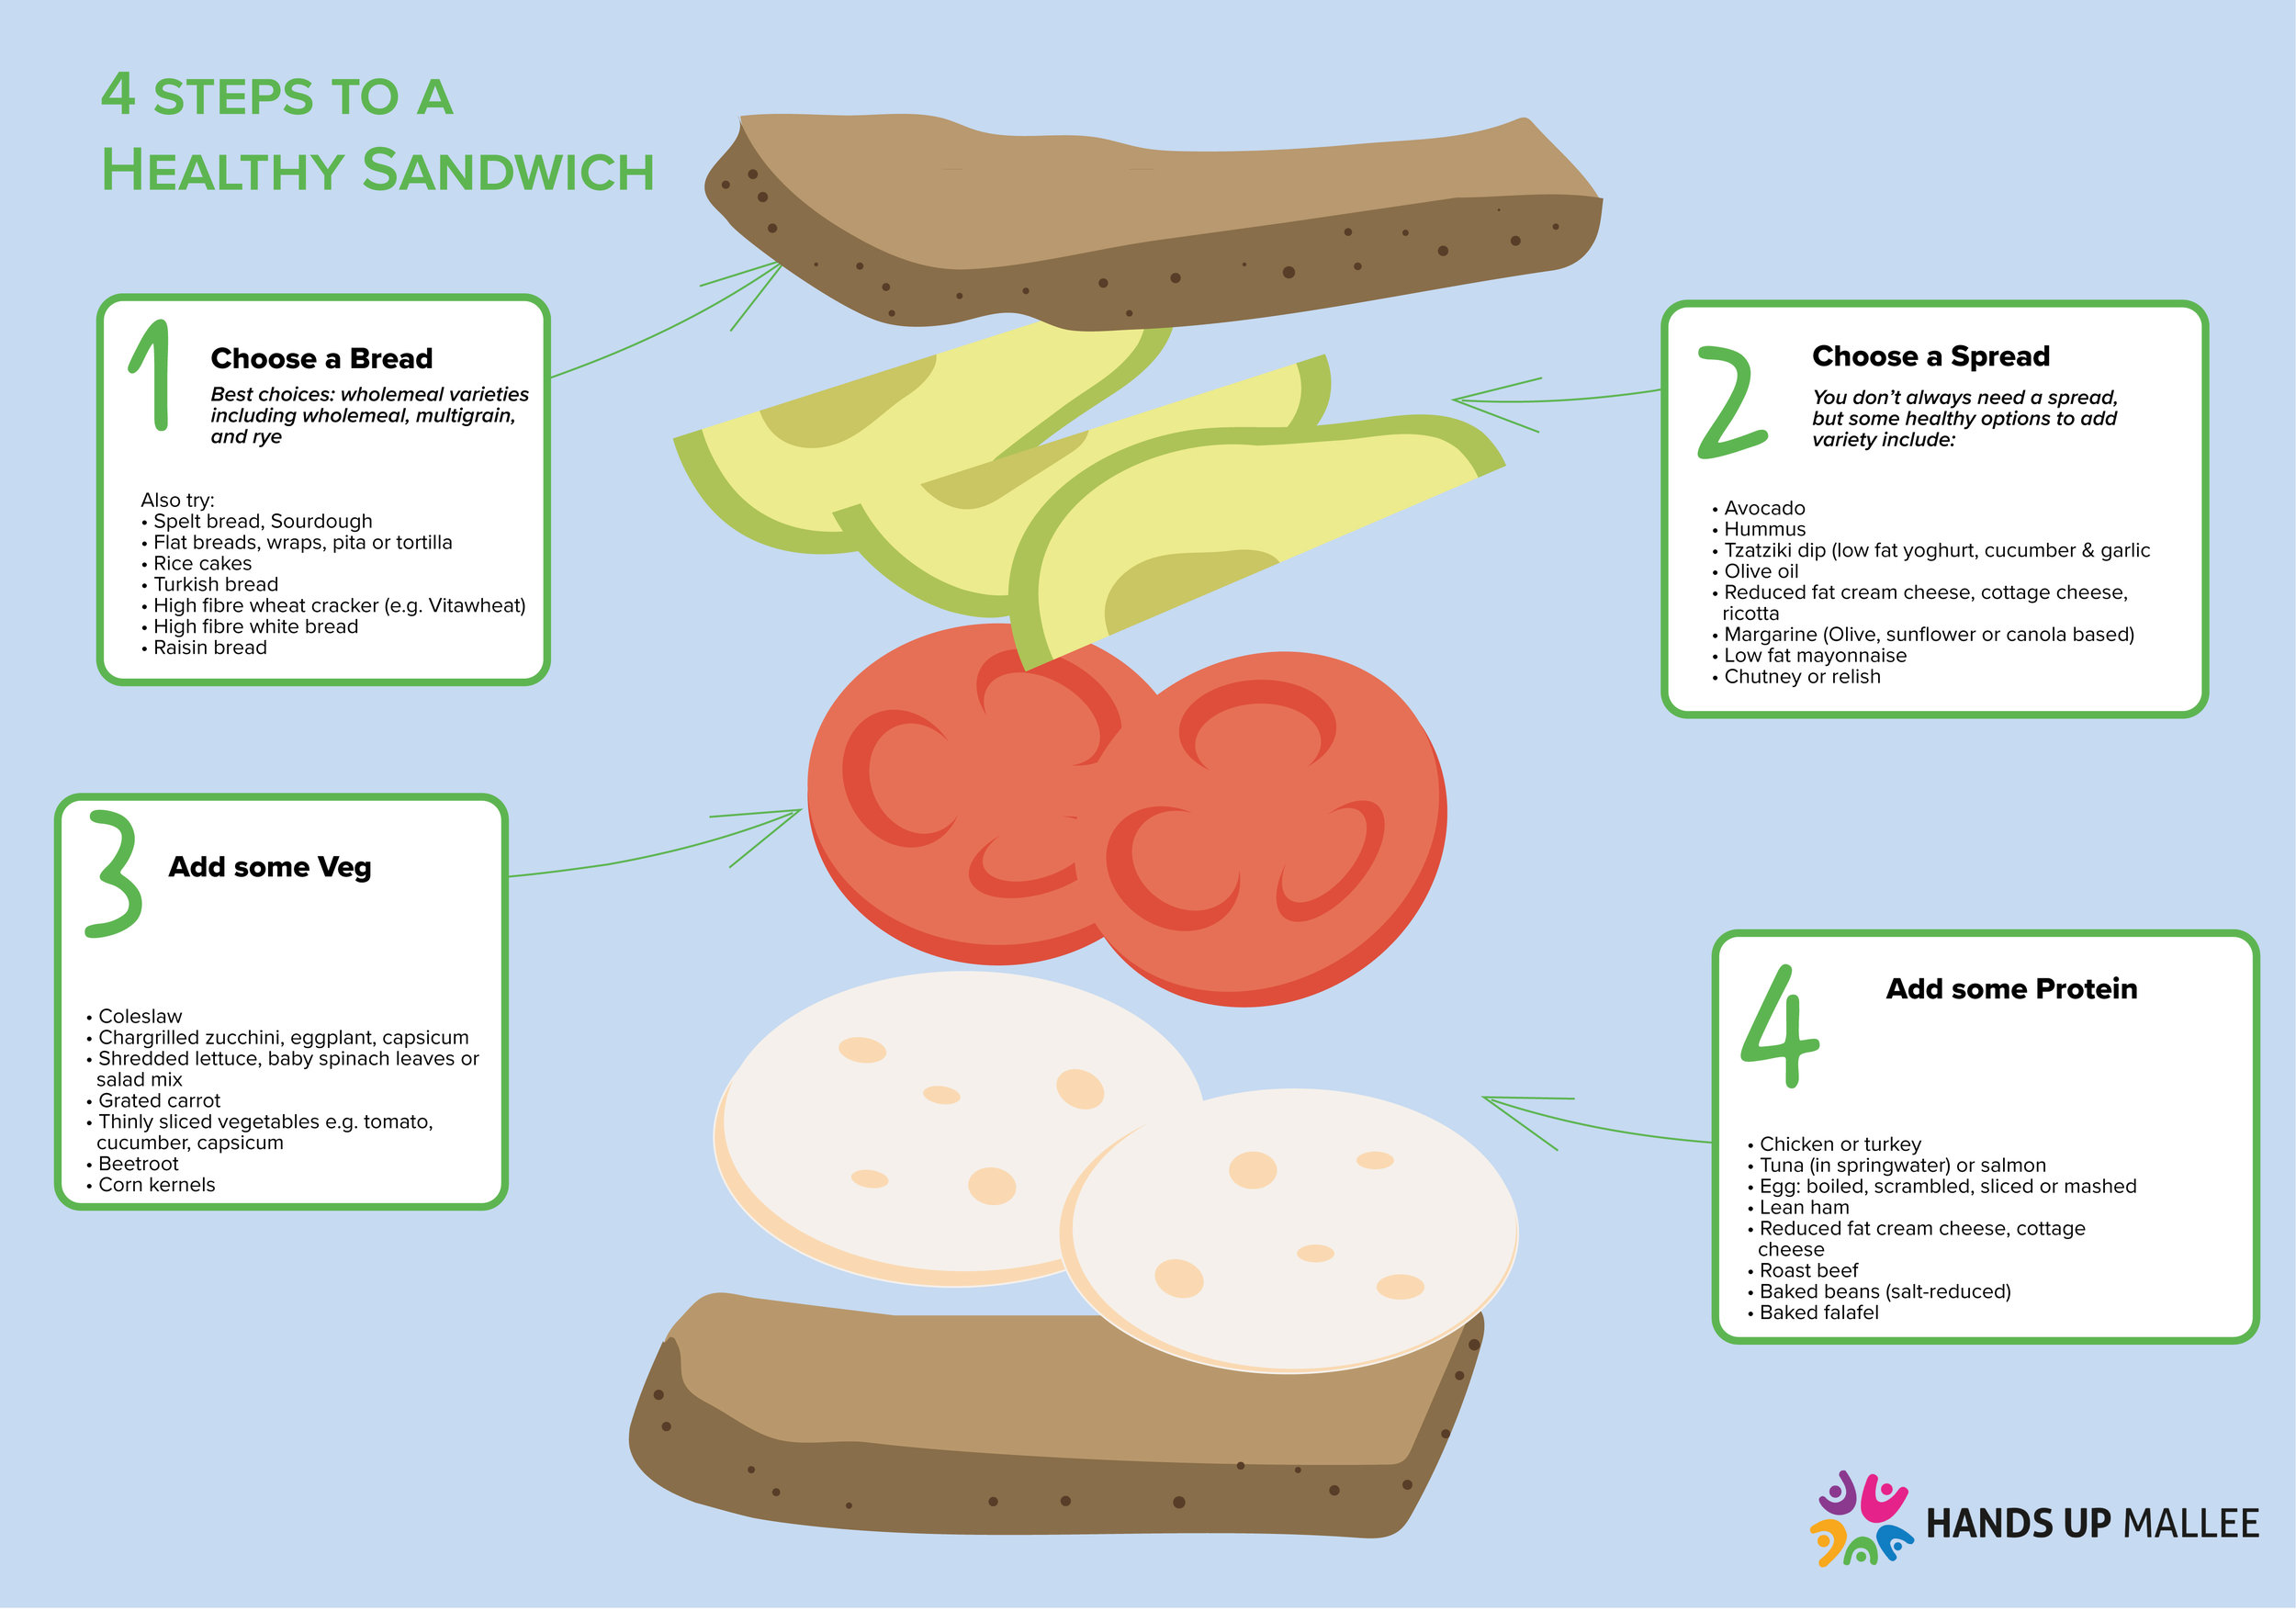 4 Steps to A healthy sandwich - Download this 2 sided guide to putting together a healthy sandwich